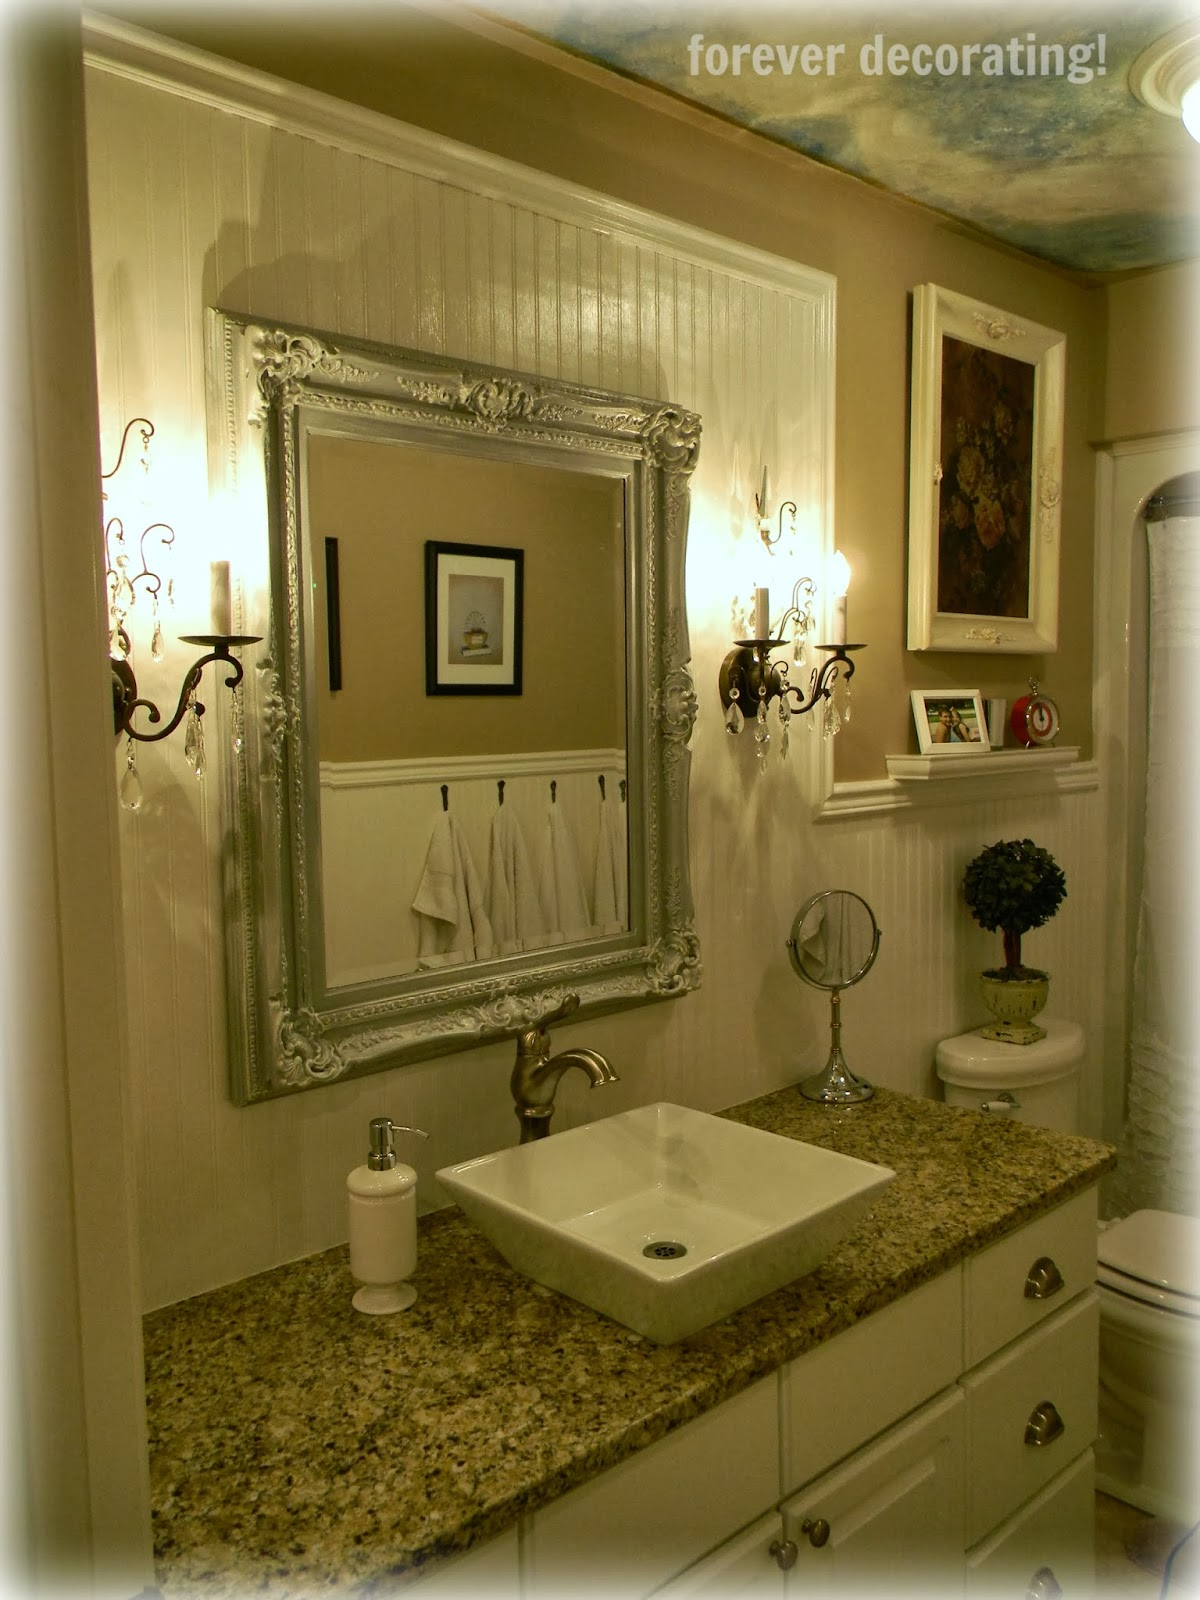 Forever decorating updated guest bathroom reveal - How to decorate a guest bathroom ...